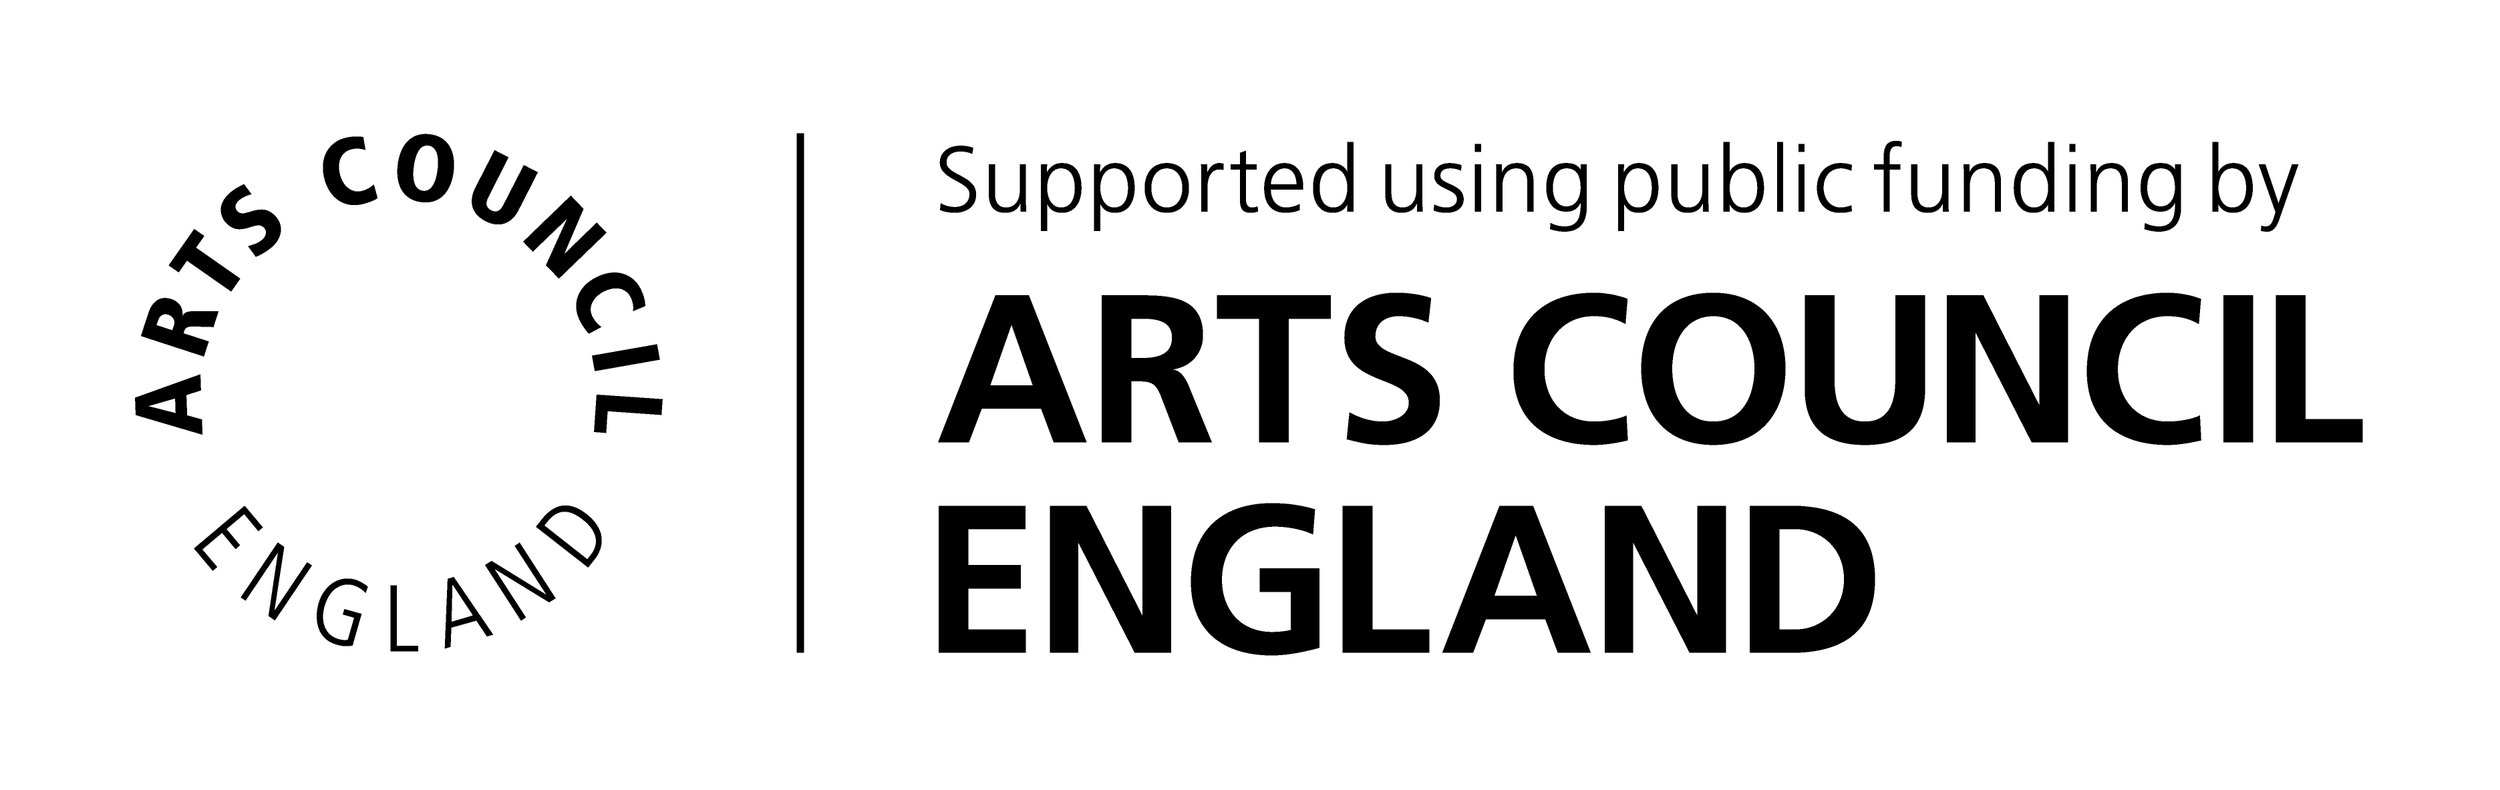 Hartlepool Waterfront Festival is also funded by Arts Council England